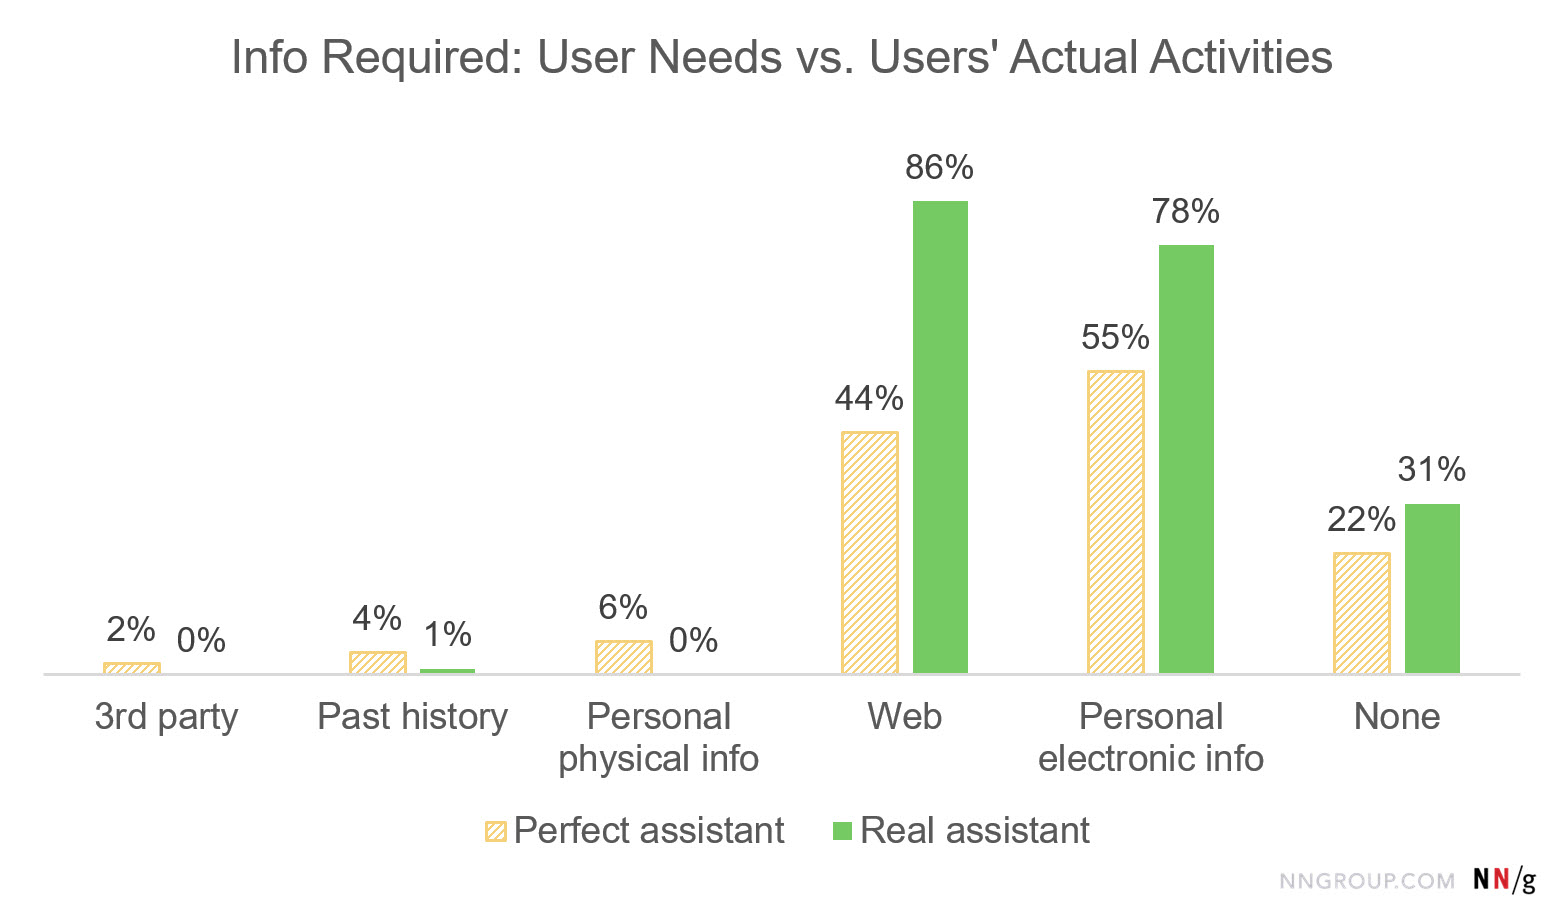 Bar chart: Info Required: User Needs vs. Users' Actual Activities